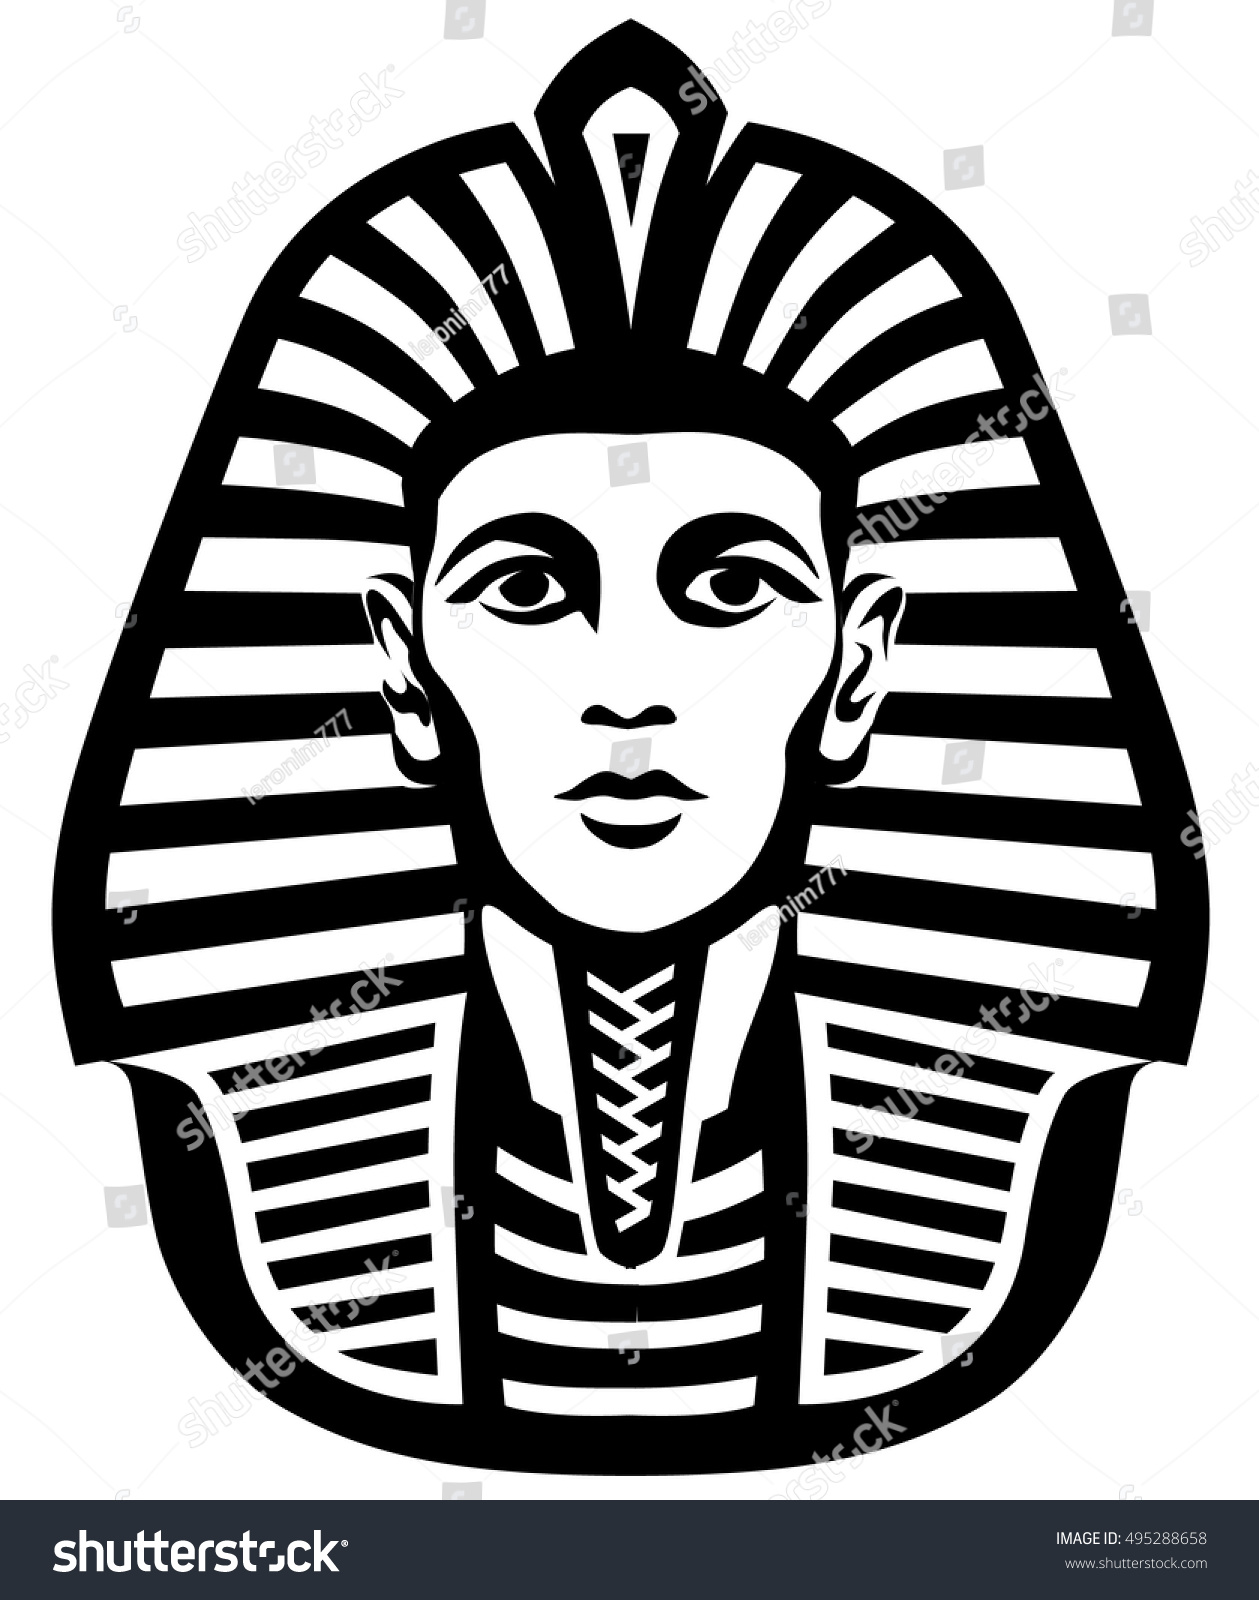 8b71a4de3 Graphic illustration of the head of the ancient Egyptian Pharaoh #495288658